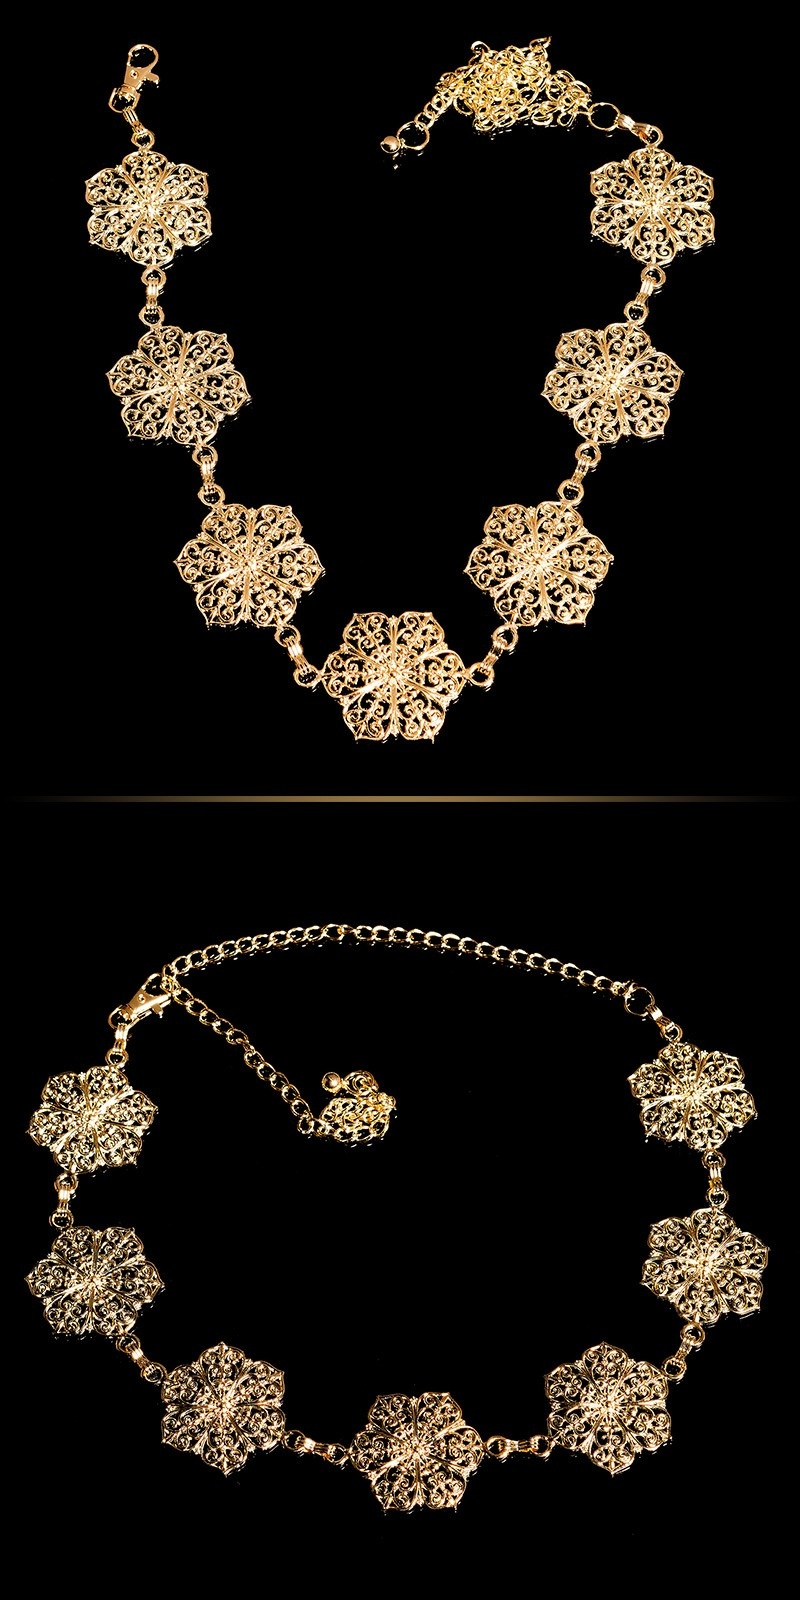 Trendy chain belt flower look elements Gold